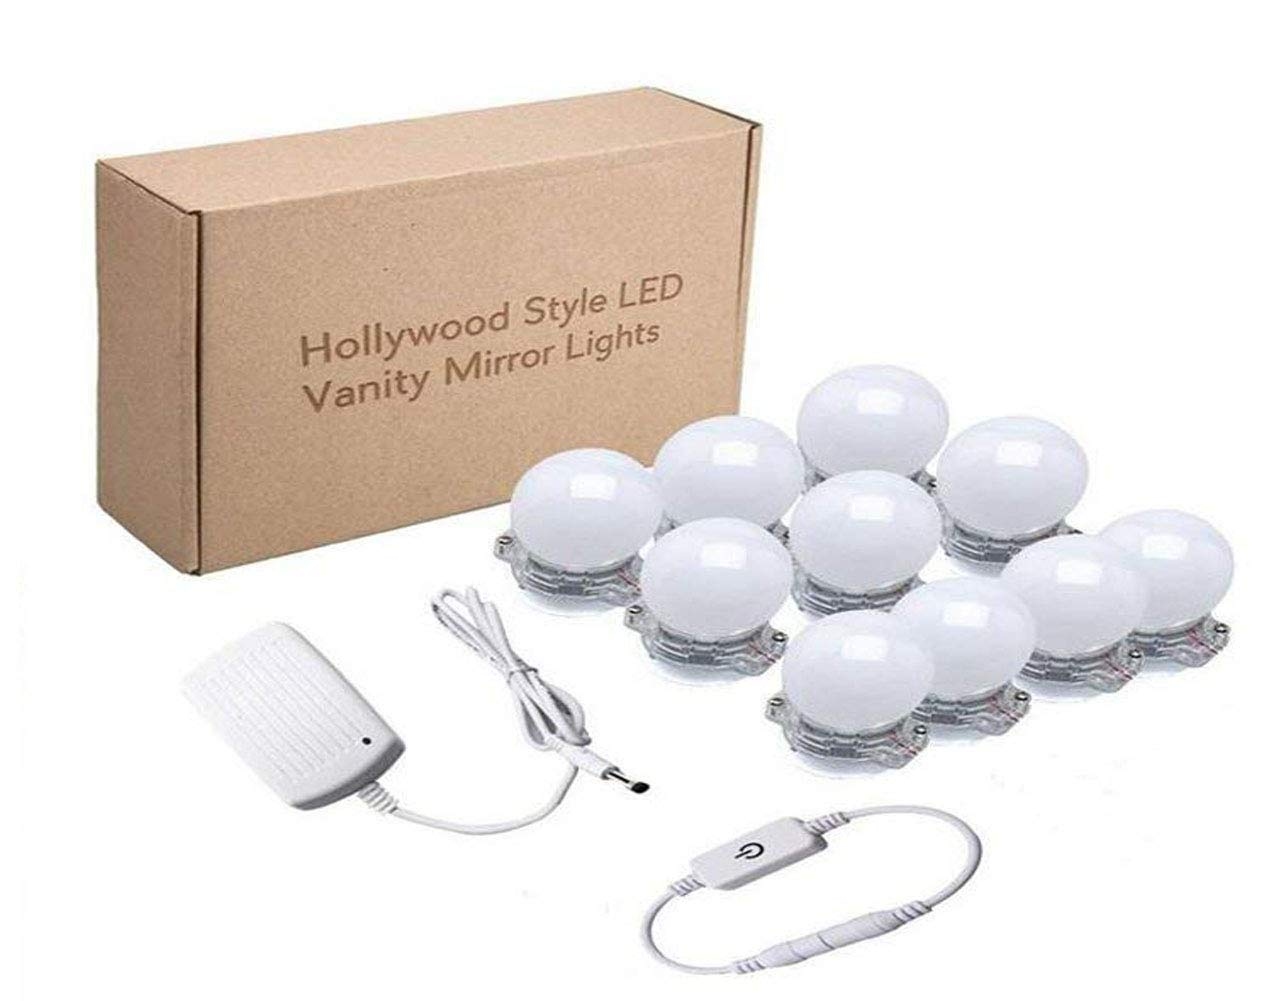 Vanity Lights Hollywood Style LED Mirror Lights Kits with 10 Dimmable Light Bulbs, 2018 Big Promotion,Lighting Fixture Strip for Makeup Vanity Table in Dressing Room (Mirror Not Include)